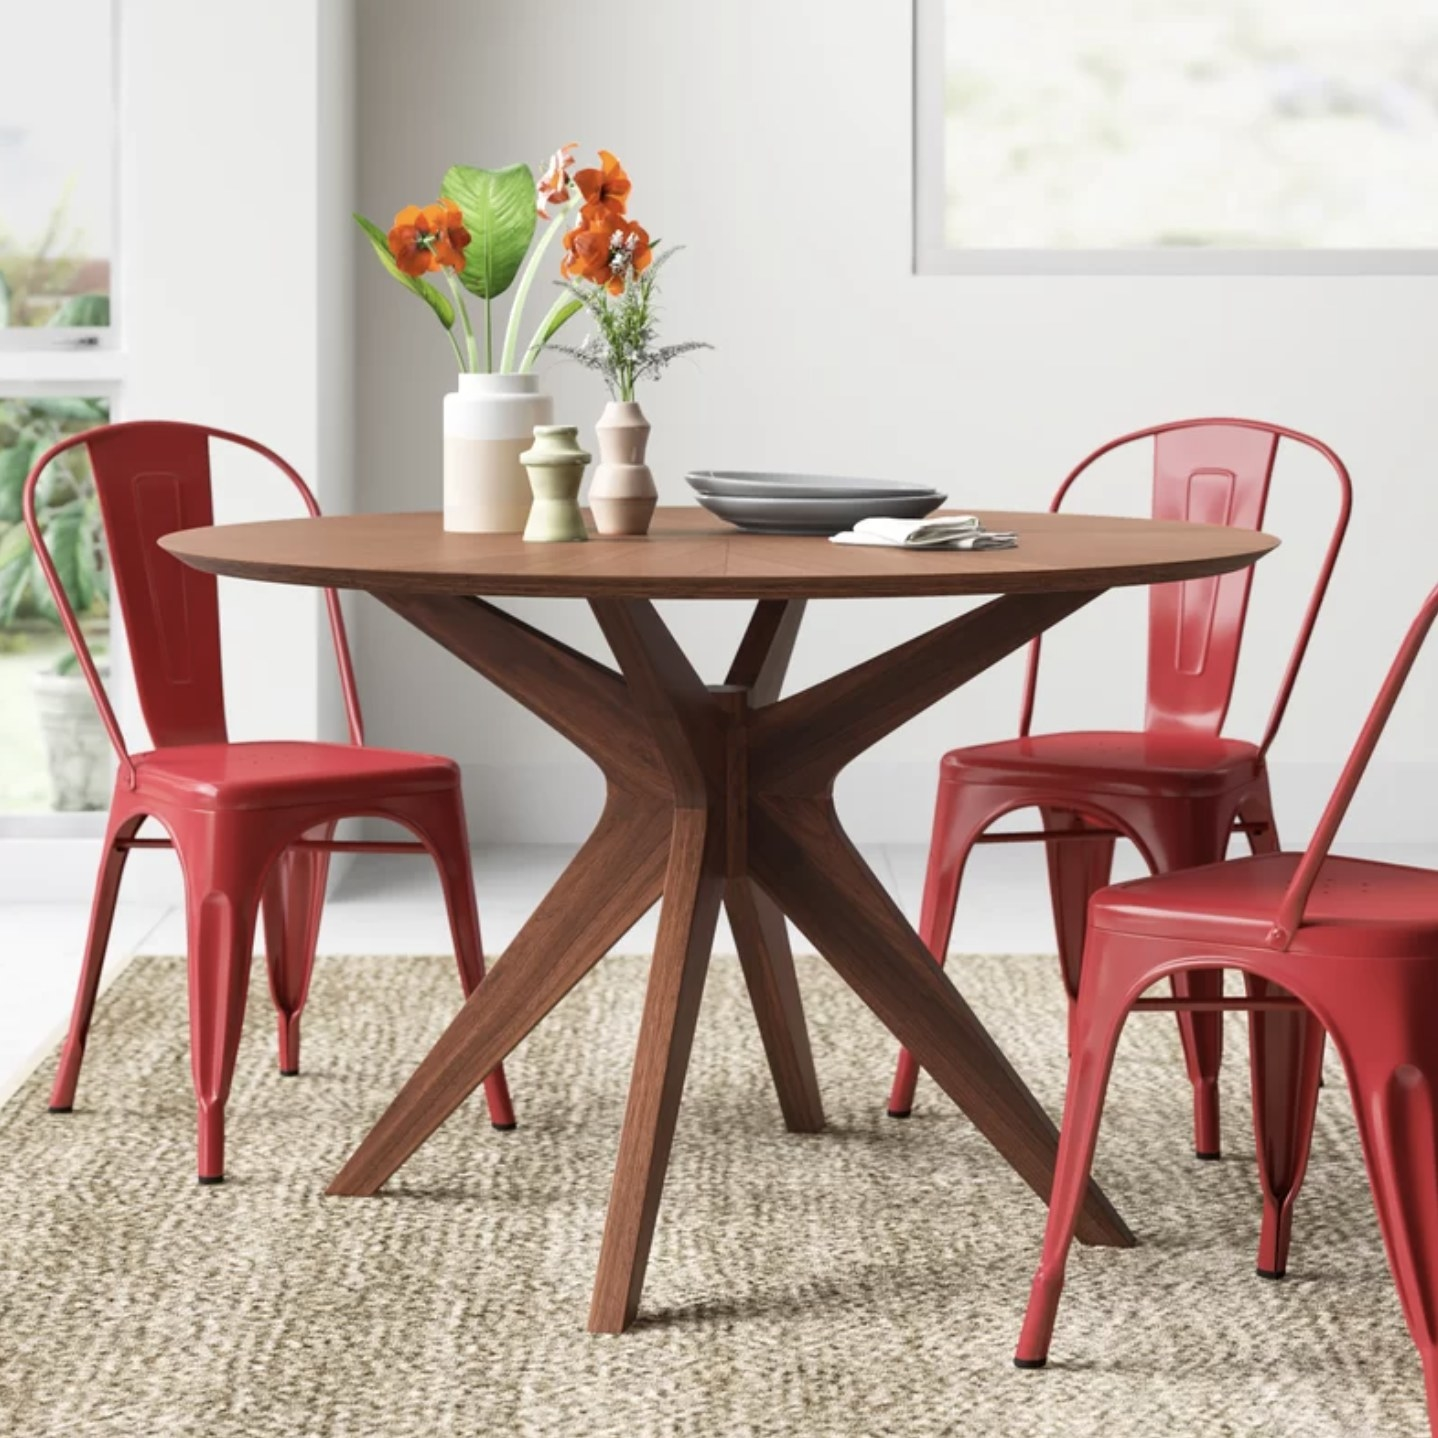 The dining room table in a wood color with red chairs surrounding it